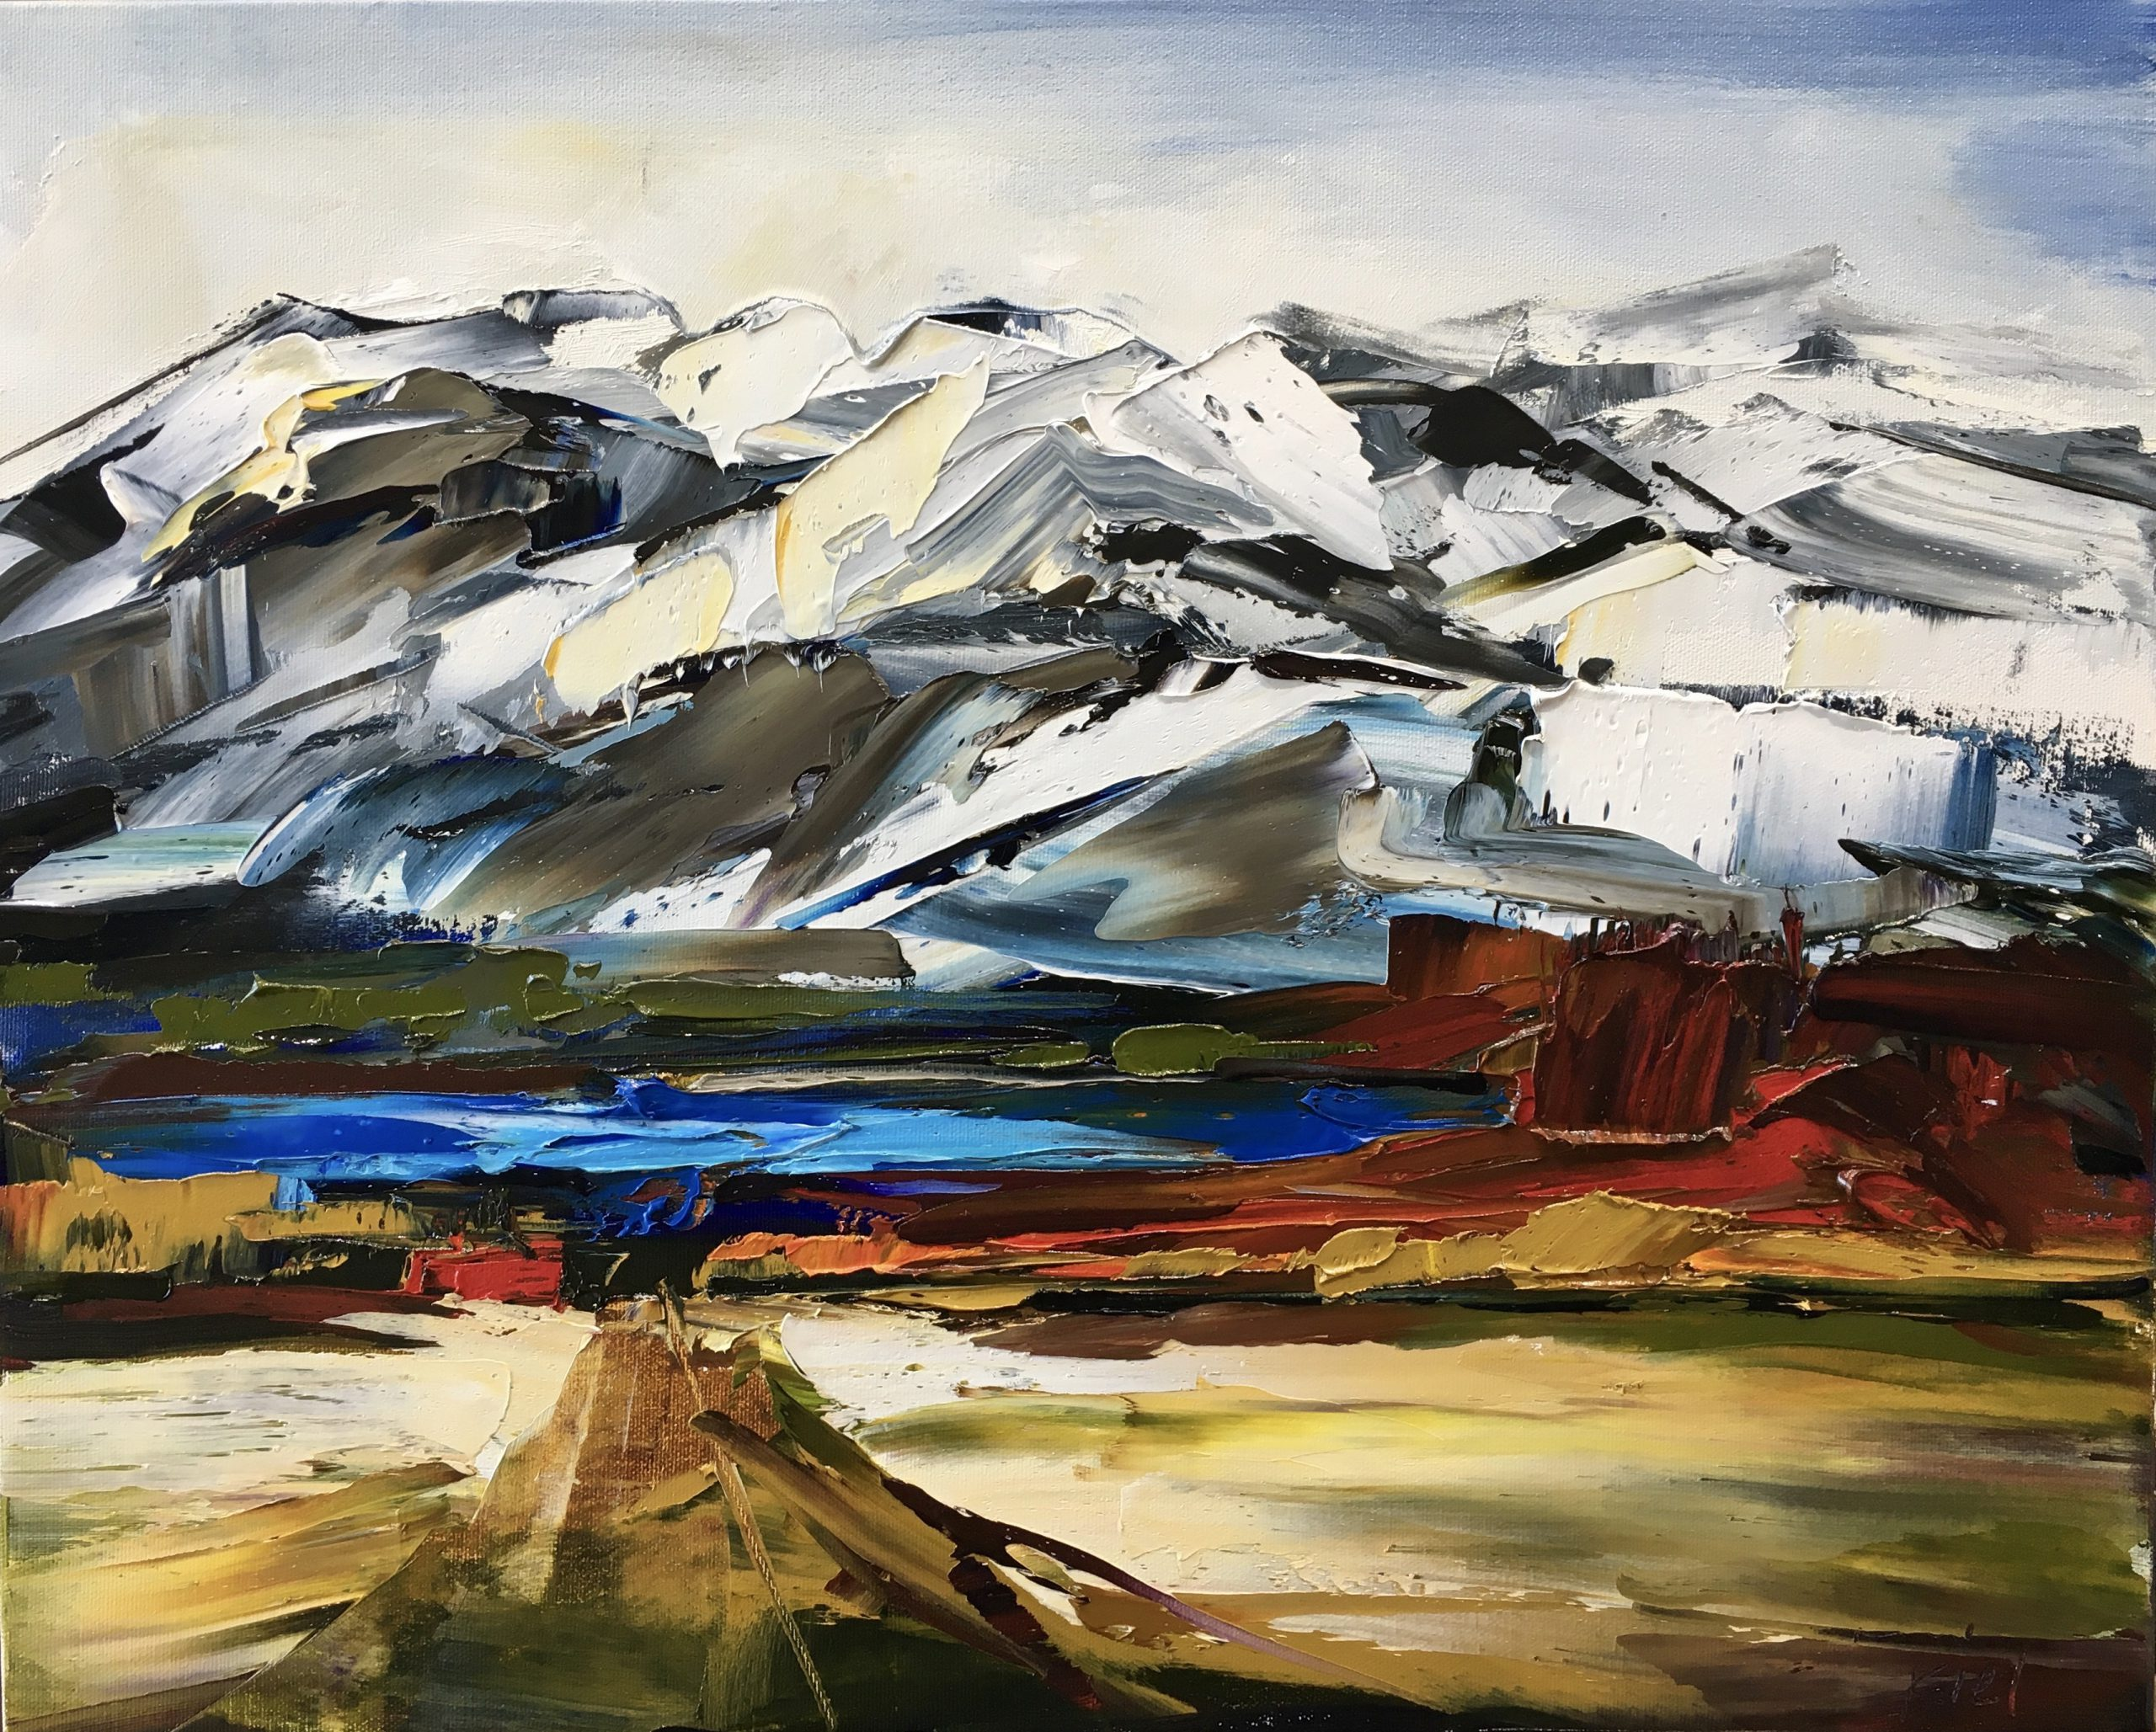 Taking the Long View, oil painting by Kimberly Kiel | Effusion Art Gallery + Cast Glass Studio, Invermere BC